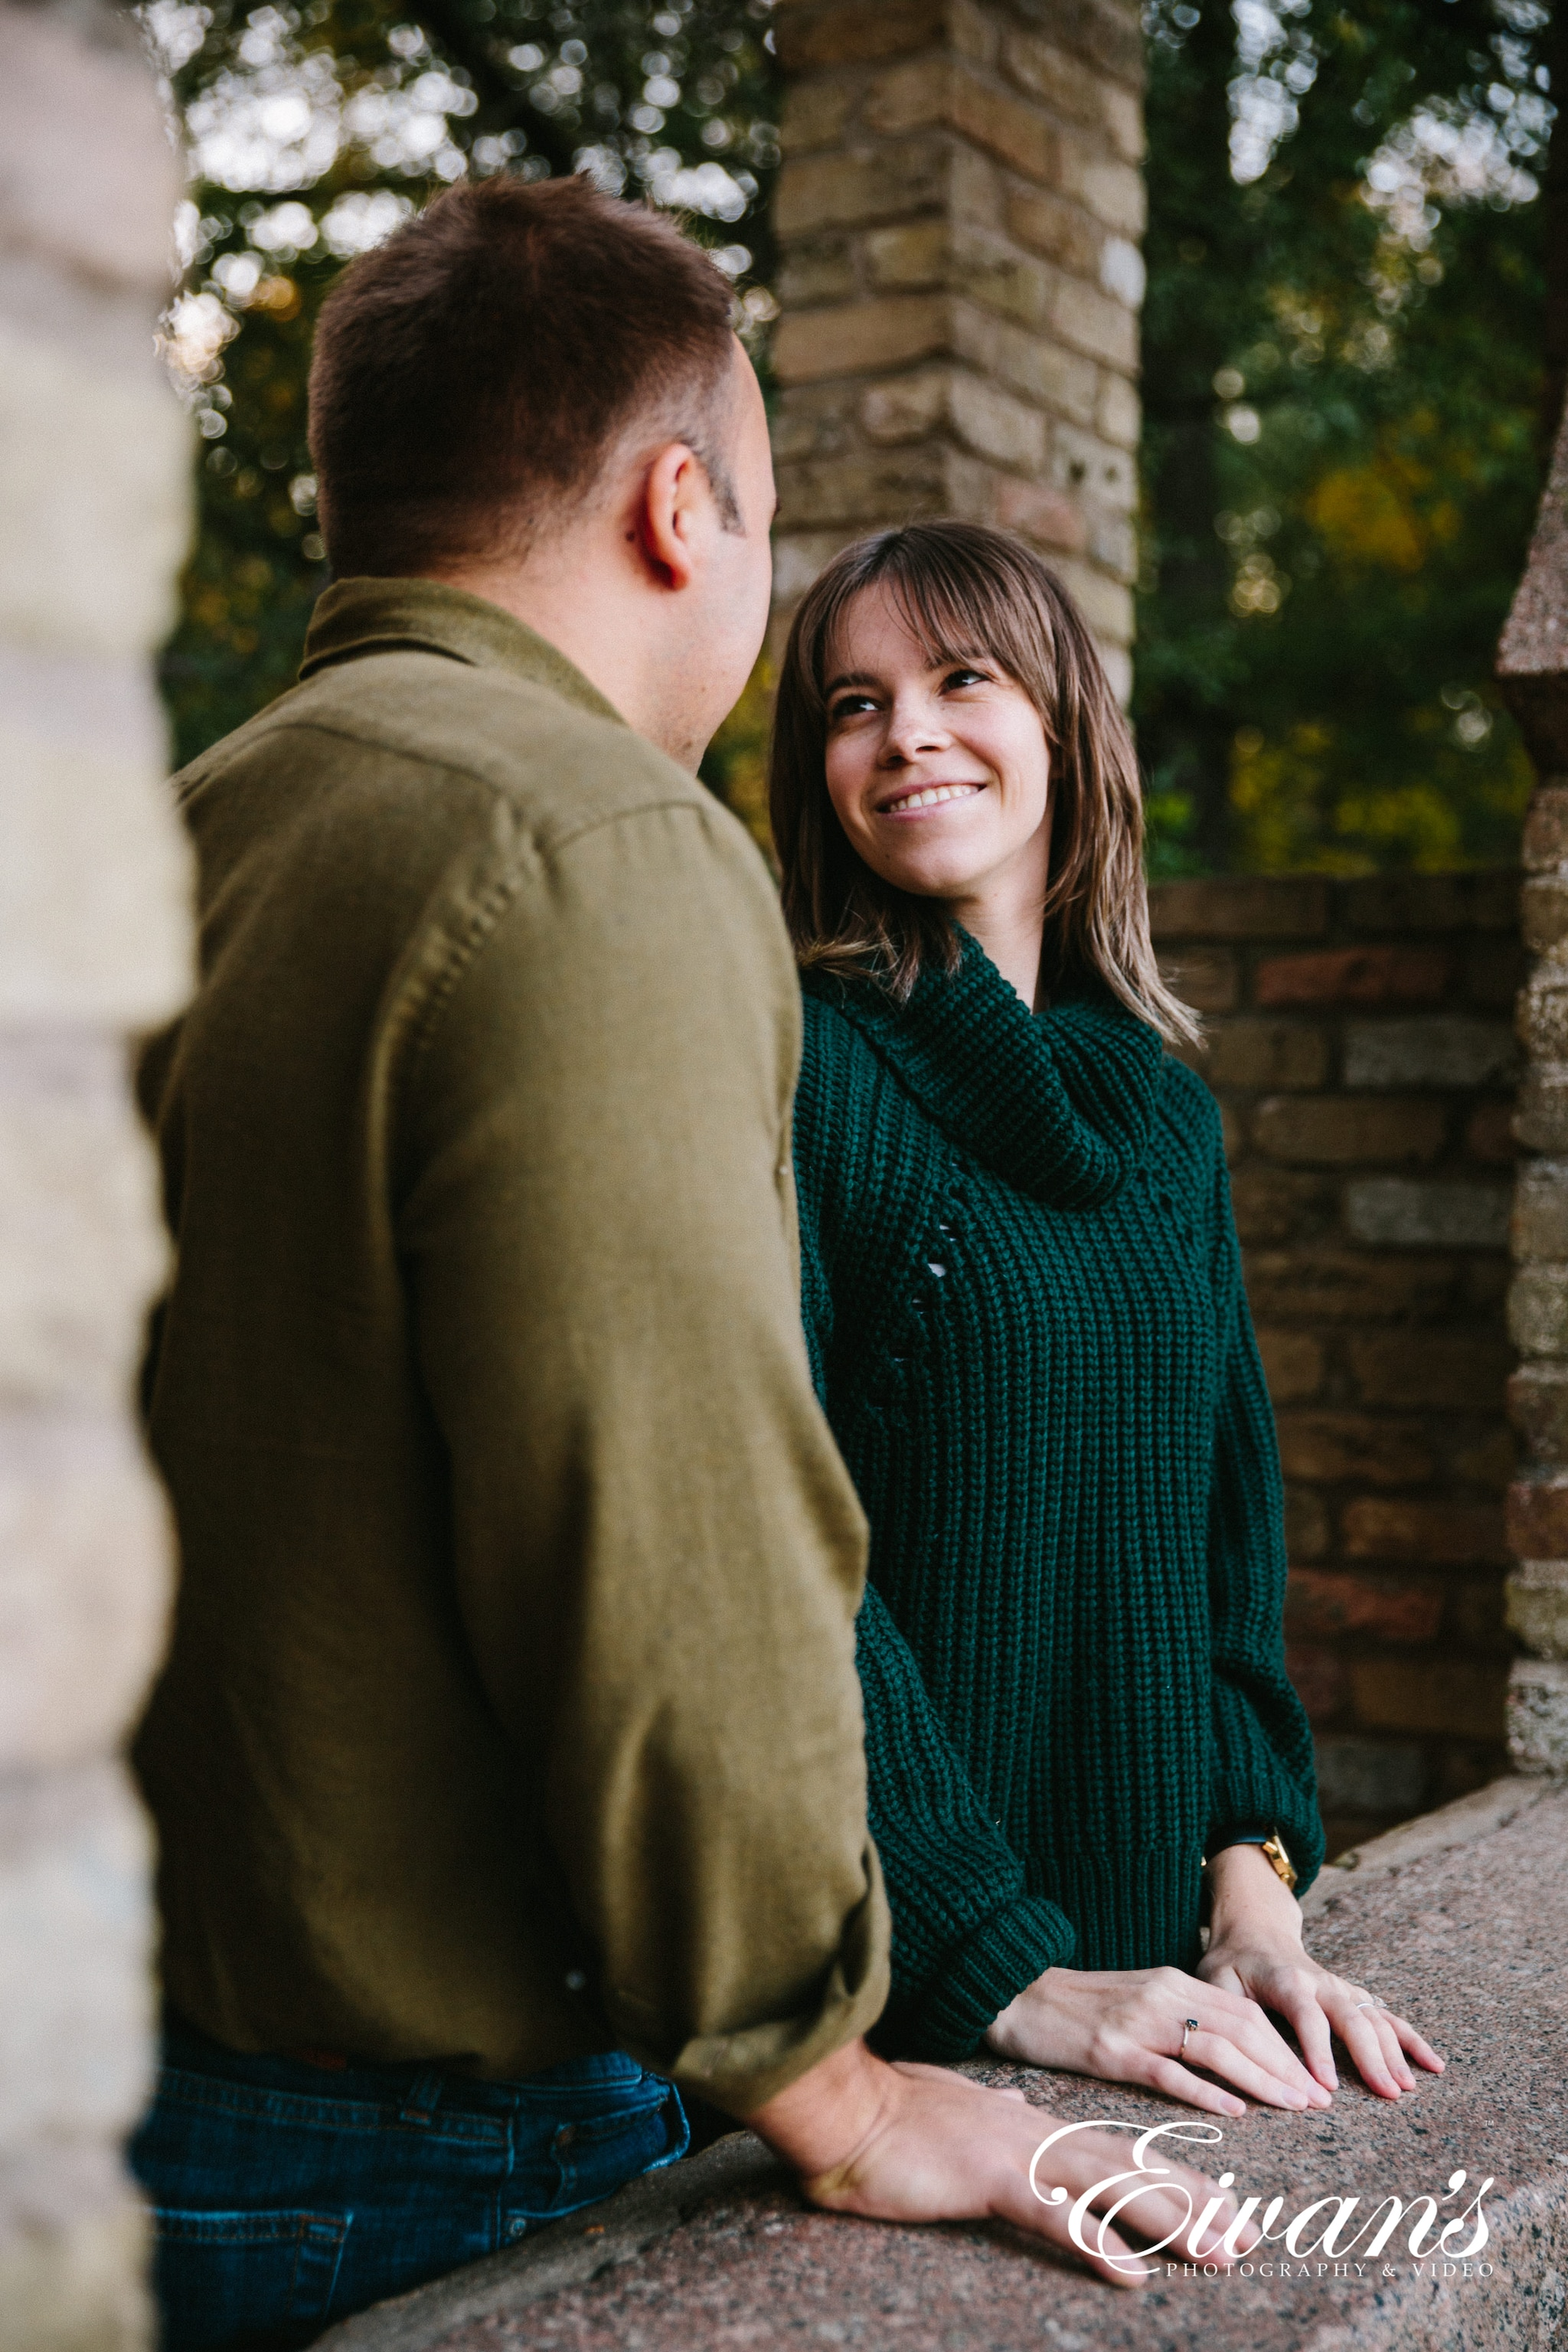 engaged female smiling in her green sweater